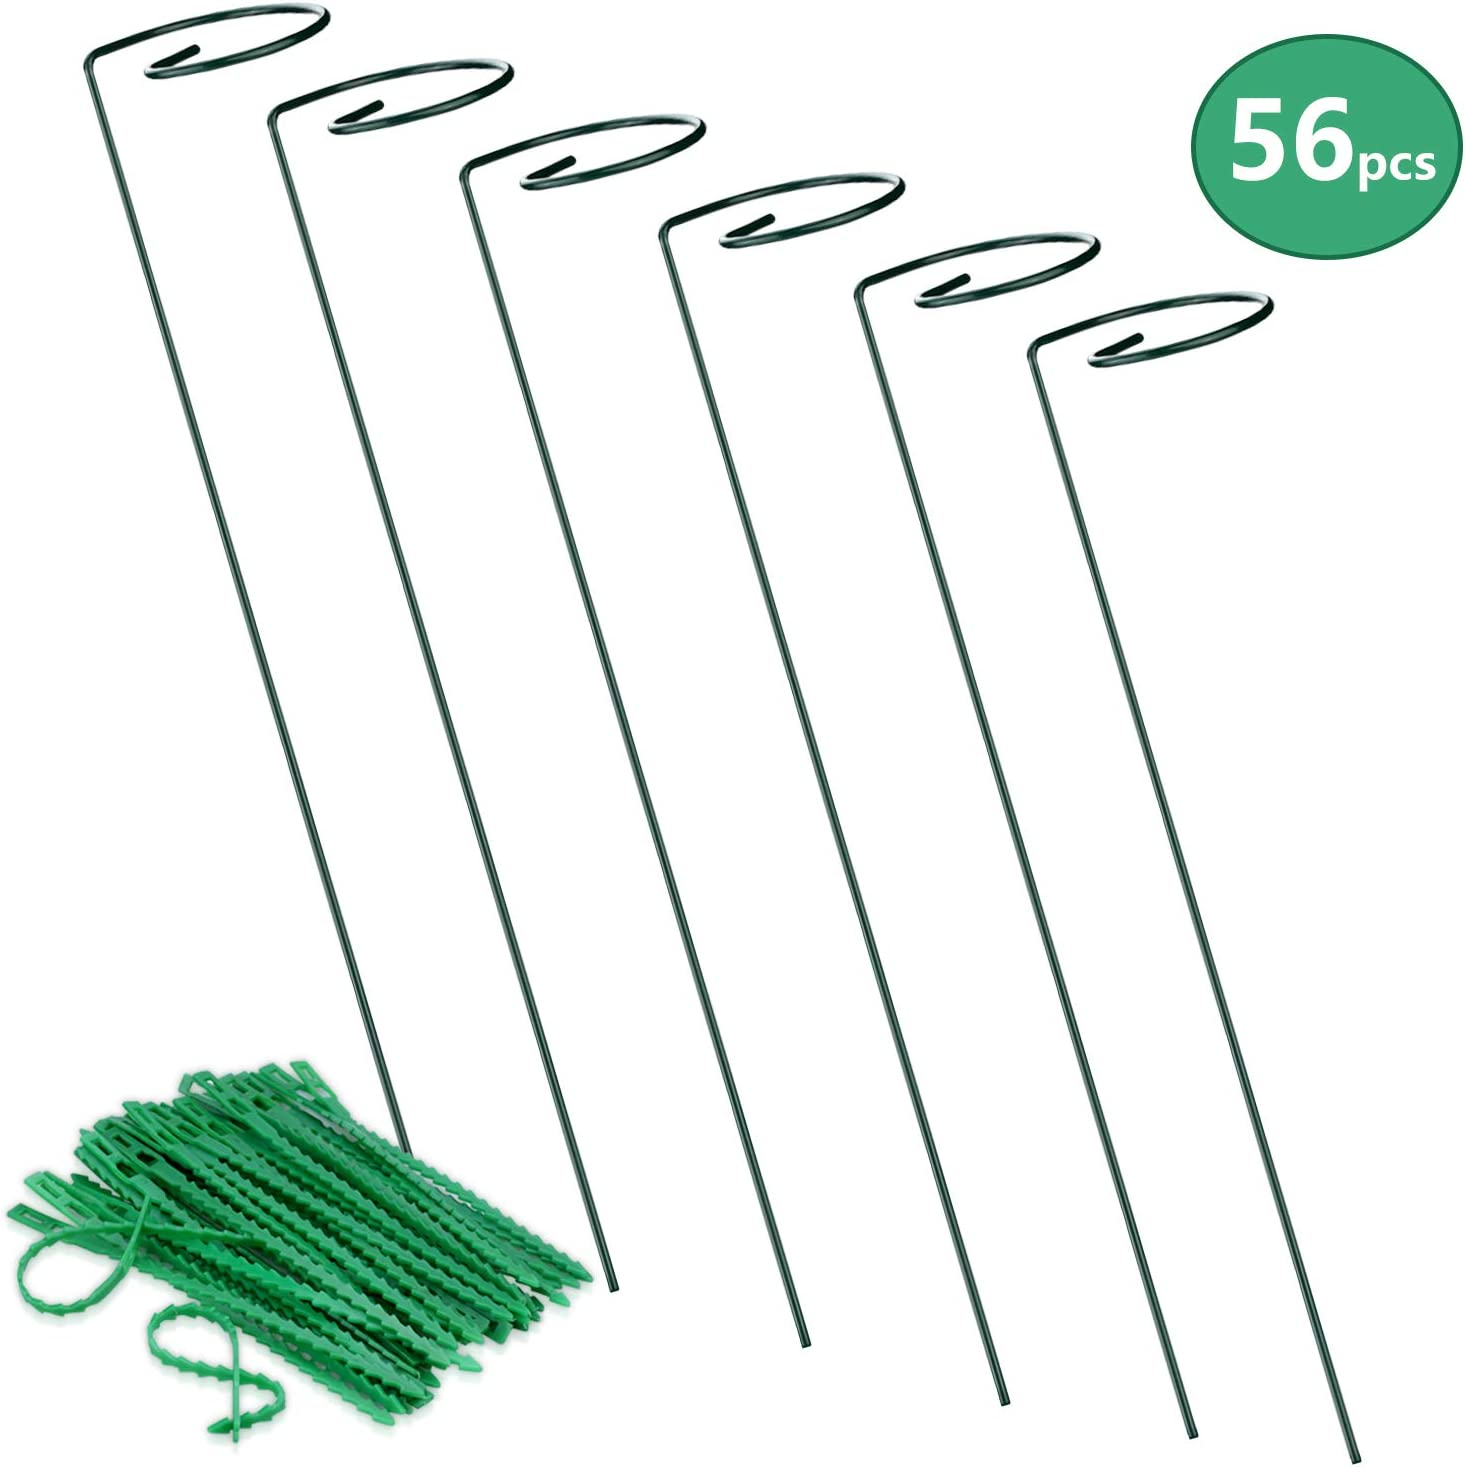 Steel Single Stem Support Stake Plant Cage Support Ring Flexible Plant Cable for Tomatoes Peony Flower Rose Lily Graden Pots 6pcs Garden Plant Supports Stakes and 50pcs 17.5cm Adjustable Plant Ties